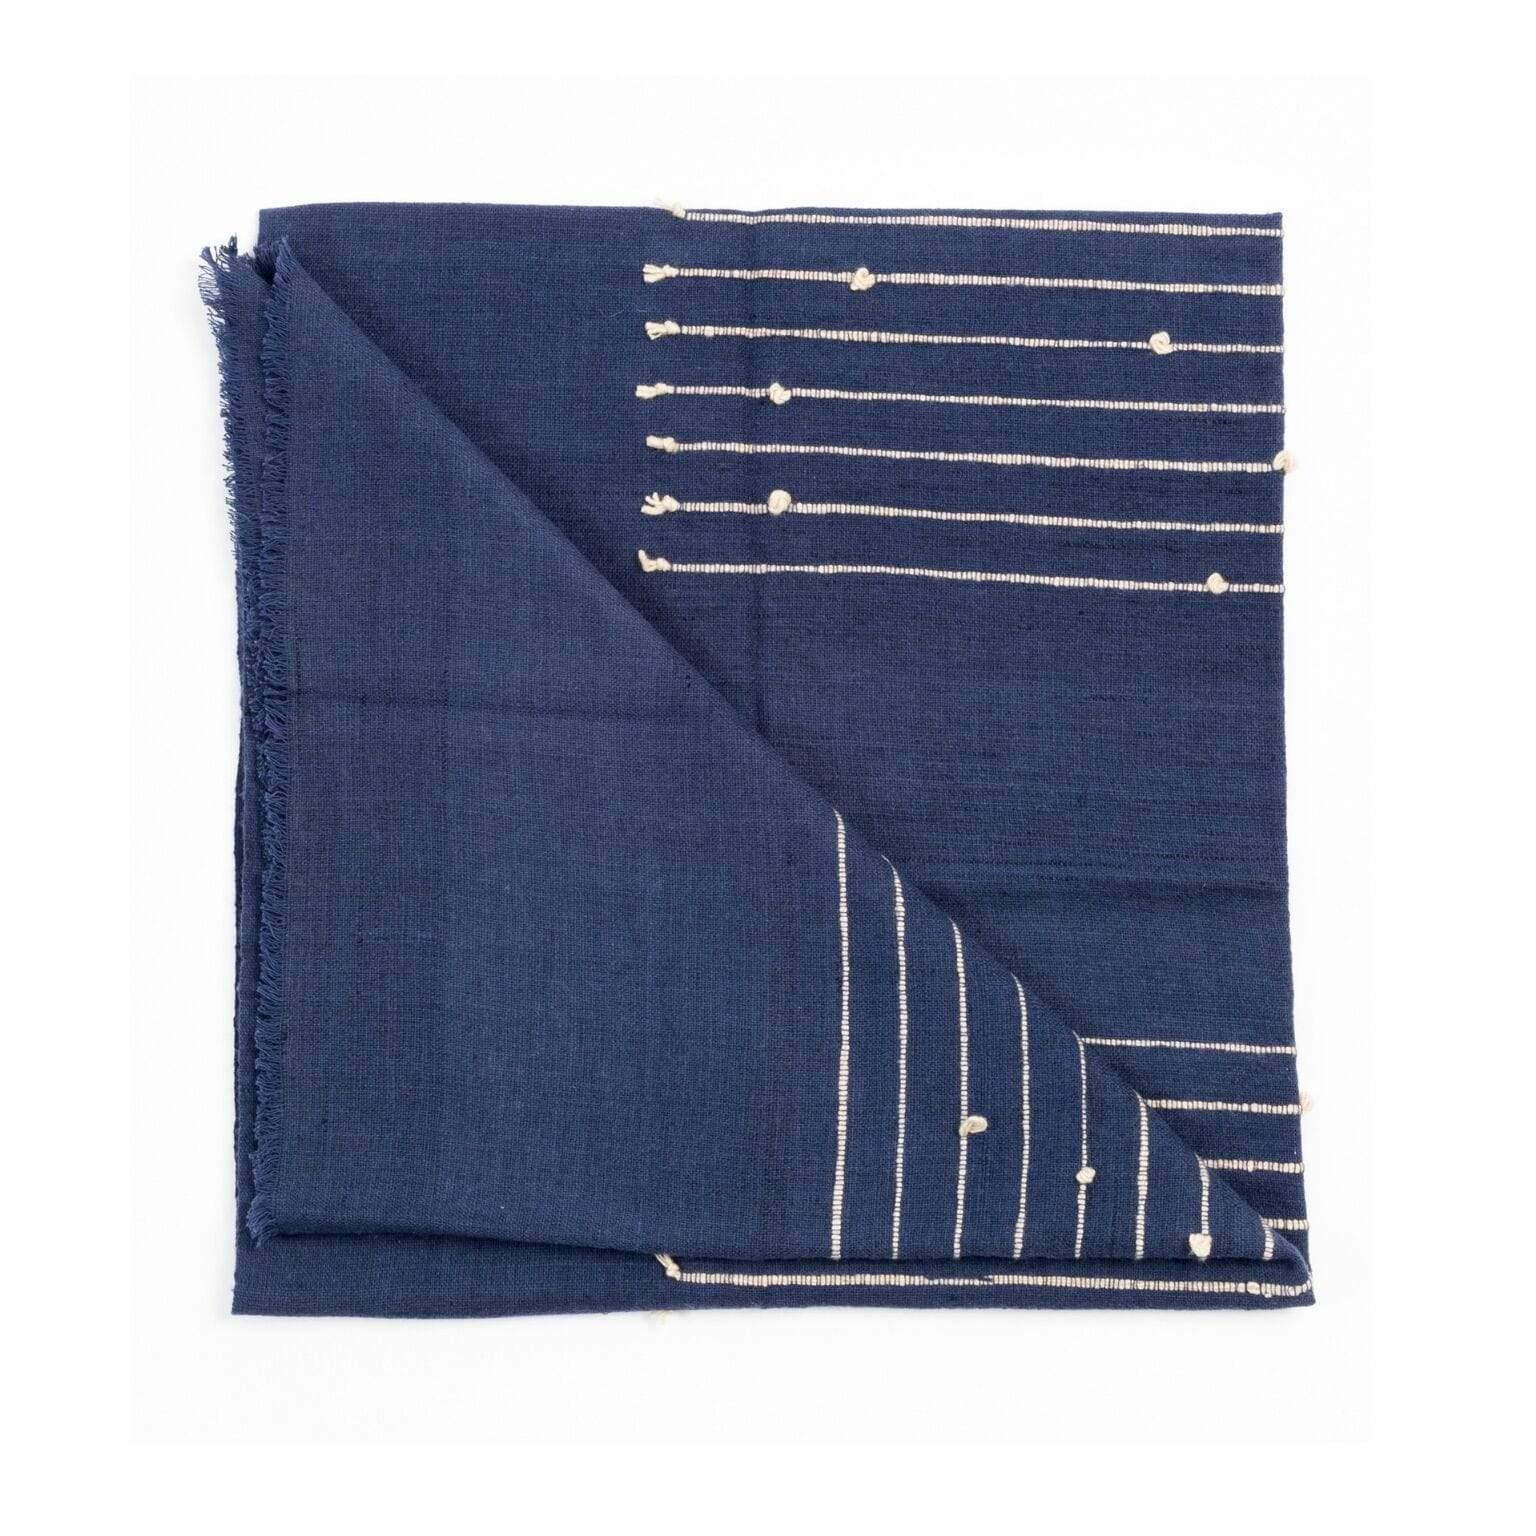 Studio Variously Cushions + Throws Indigo Rosewood Merino and Cotton Throw